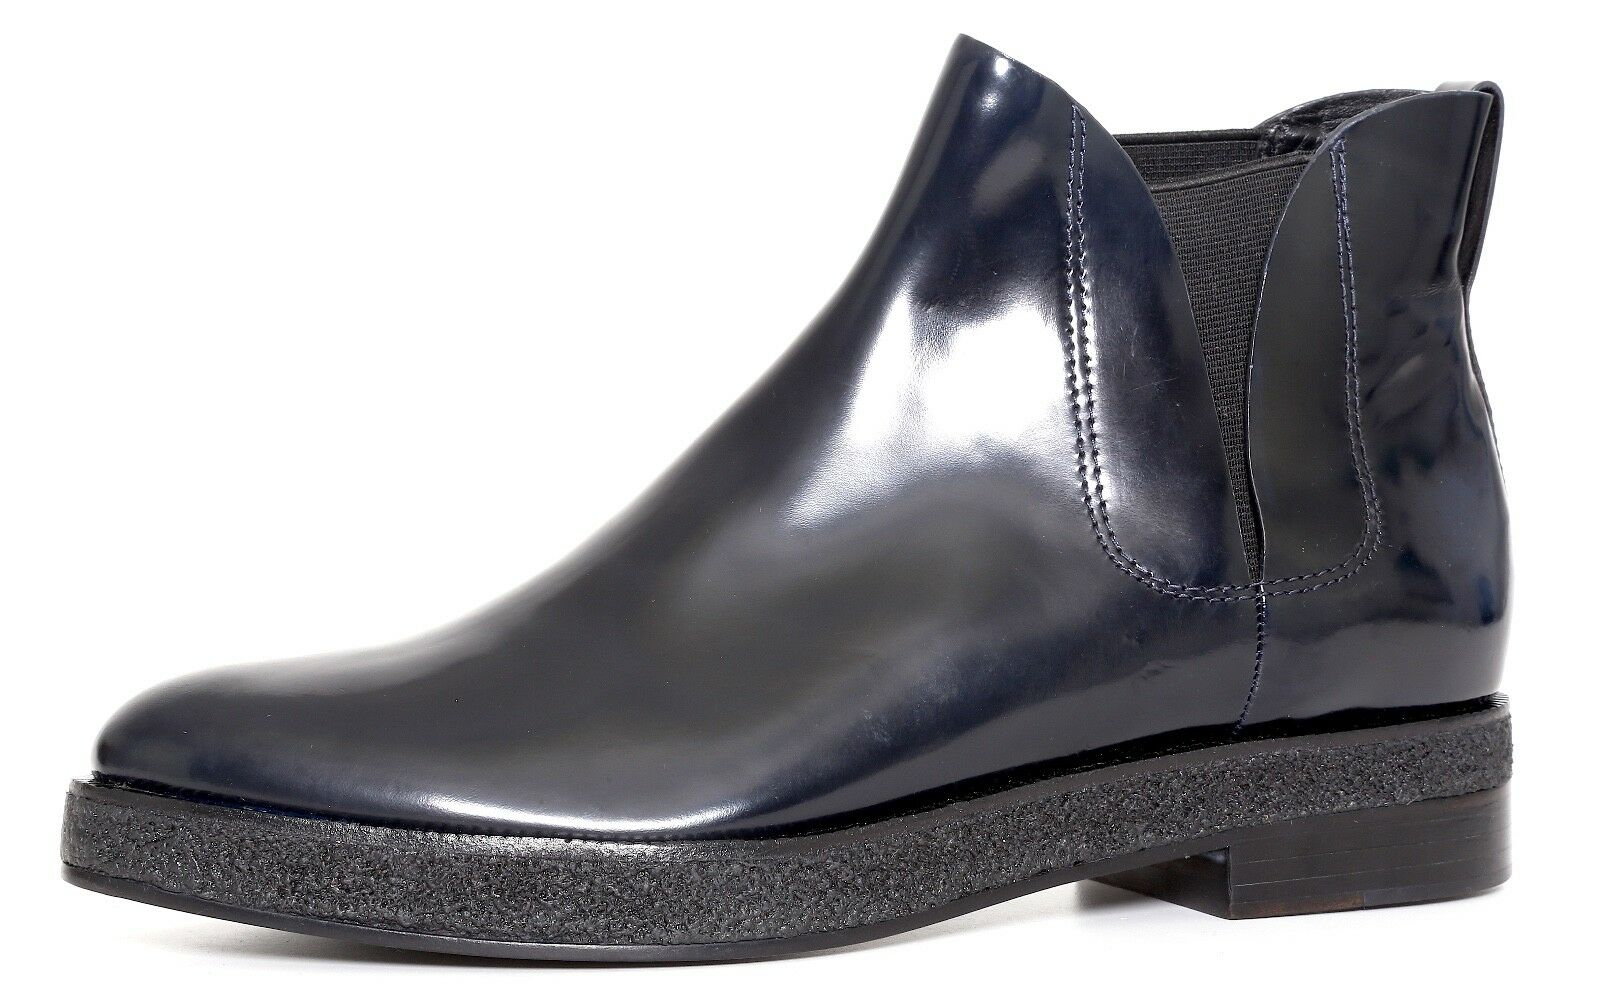 Alexander Wang Ankle Boots Patent Leather Navy Blue Women Sz 40.5